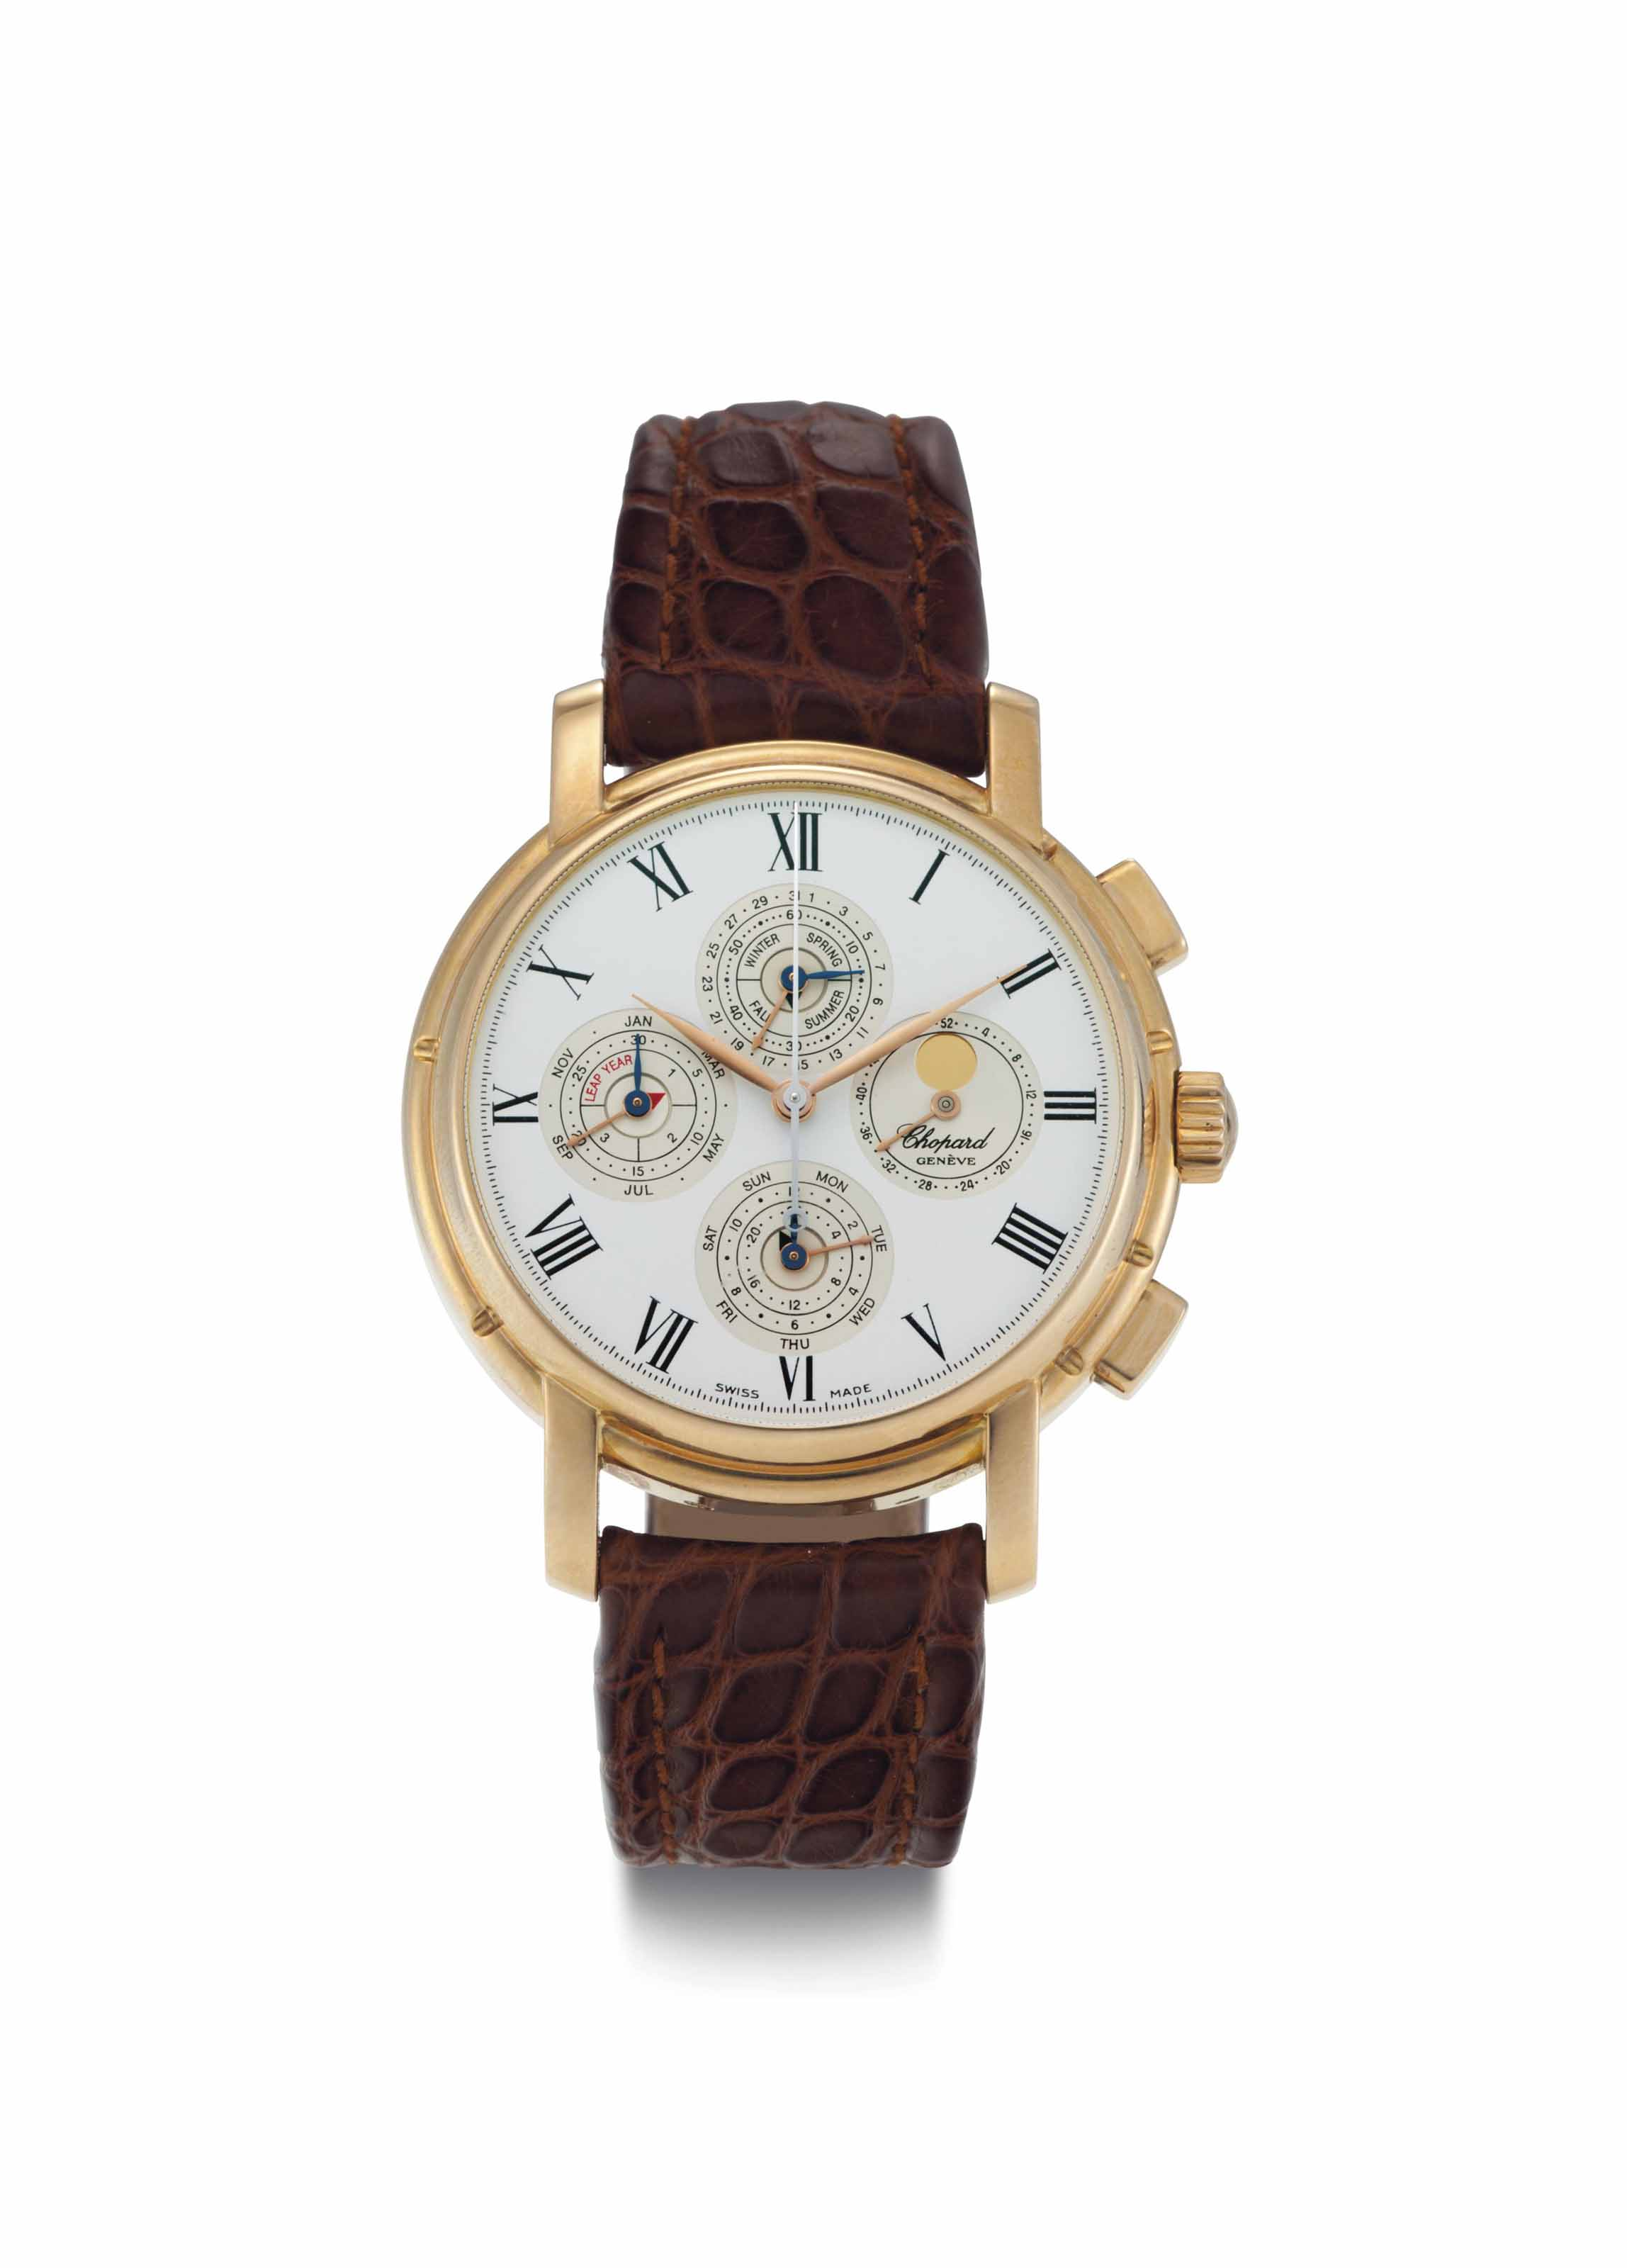 Chopard. A Limited Edition 18k Pink Gold Automatic Perpetual Calendar Chronograph Wristwatch with Moon Phases, Seasonal Indicator, and Week of the Year Indicator